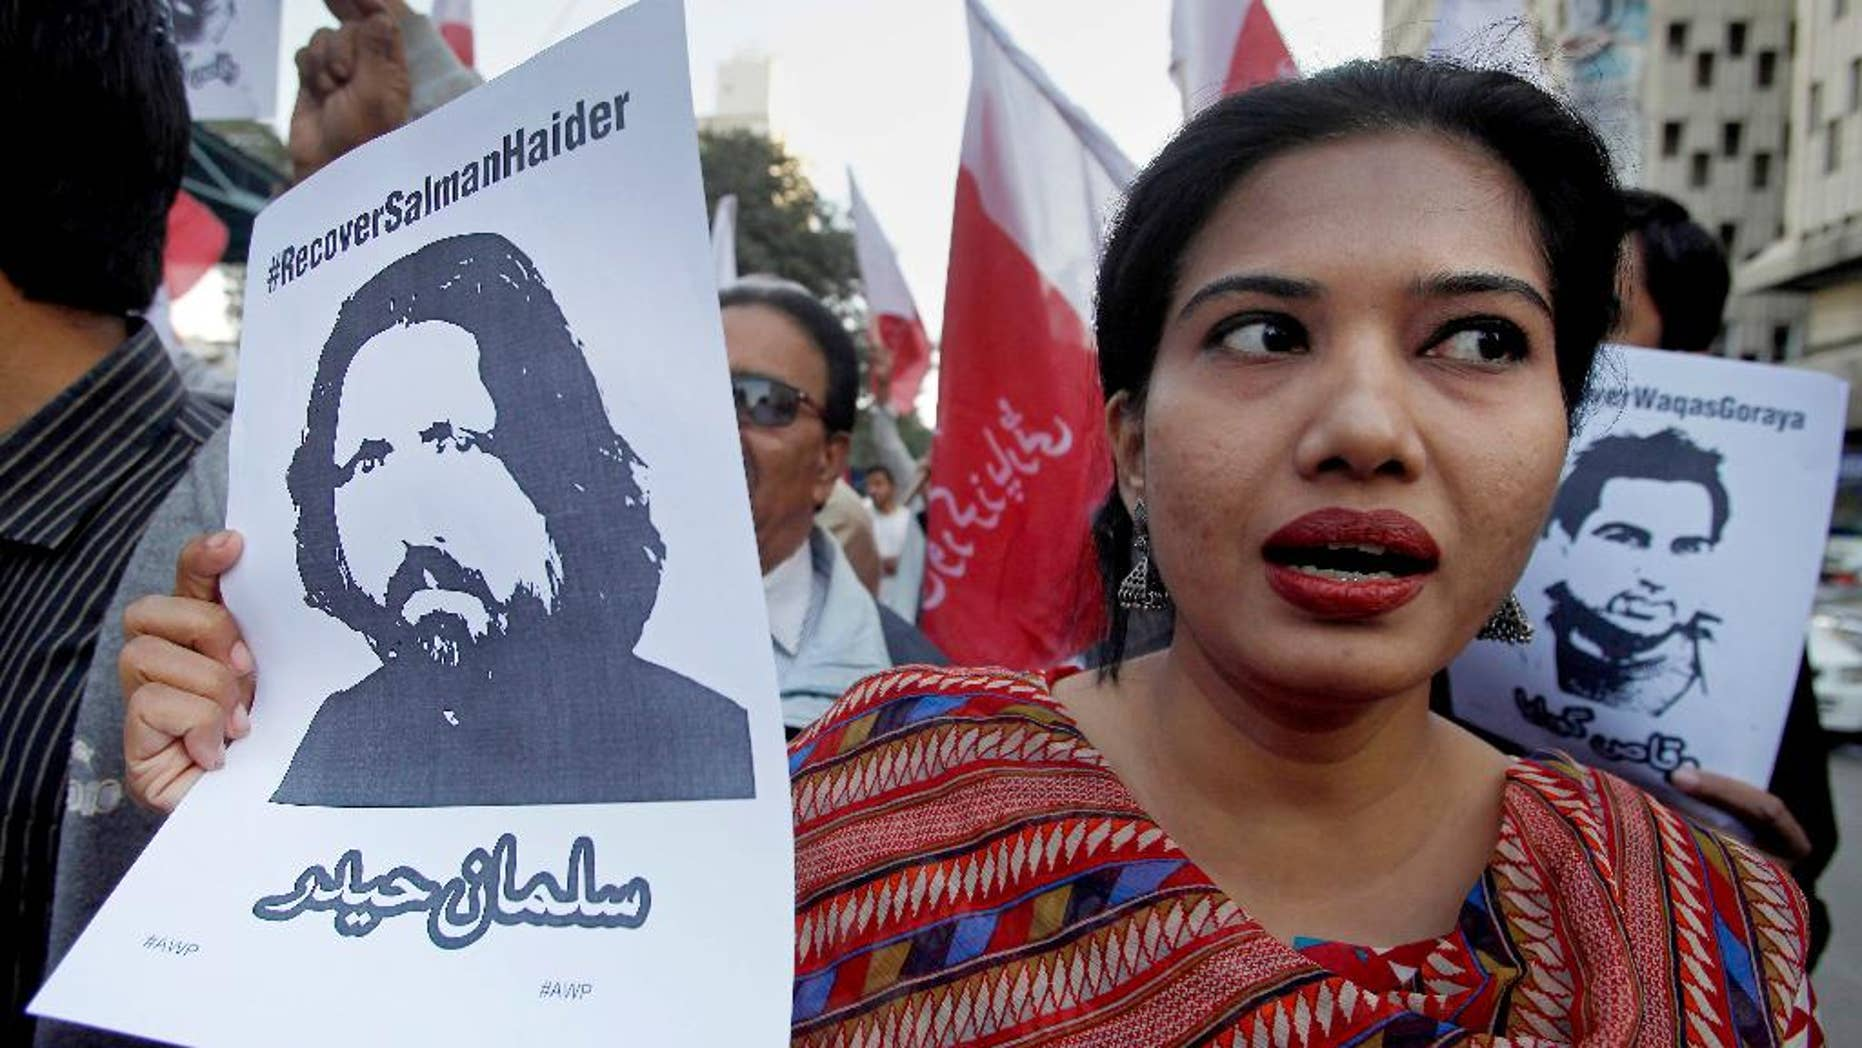 FILE - In this Tuesday, Jan. 10, 2017 file photo, a woman joins other demonstrators to condemn missing human rights activists, in Karachi, Pakistan. Pakistan banned Amir Liaqat, a TV host, over incitement and registered a criminal case against him Thursday, Jan. 26, 2017, after he called for five missing human rights activists and other liberal Pakistanis to be killed for blasphemy and sedition, officials said. The state media regulator said that Liaqat, a self-styled religious scholar, could no longer appear on the pro-military BOL TV, where he hosted a daily program, or any other local broadcast. (AP Photo/Fareed Khan, File)